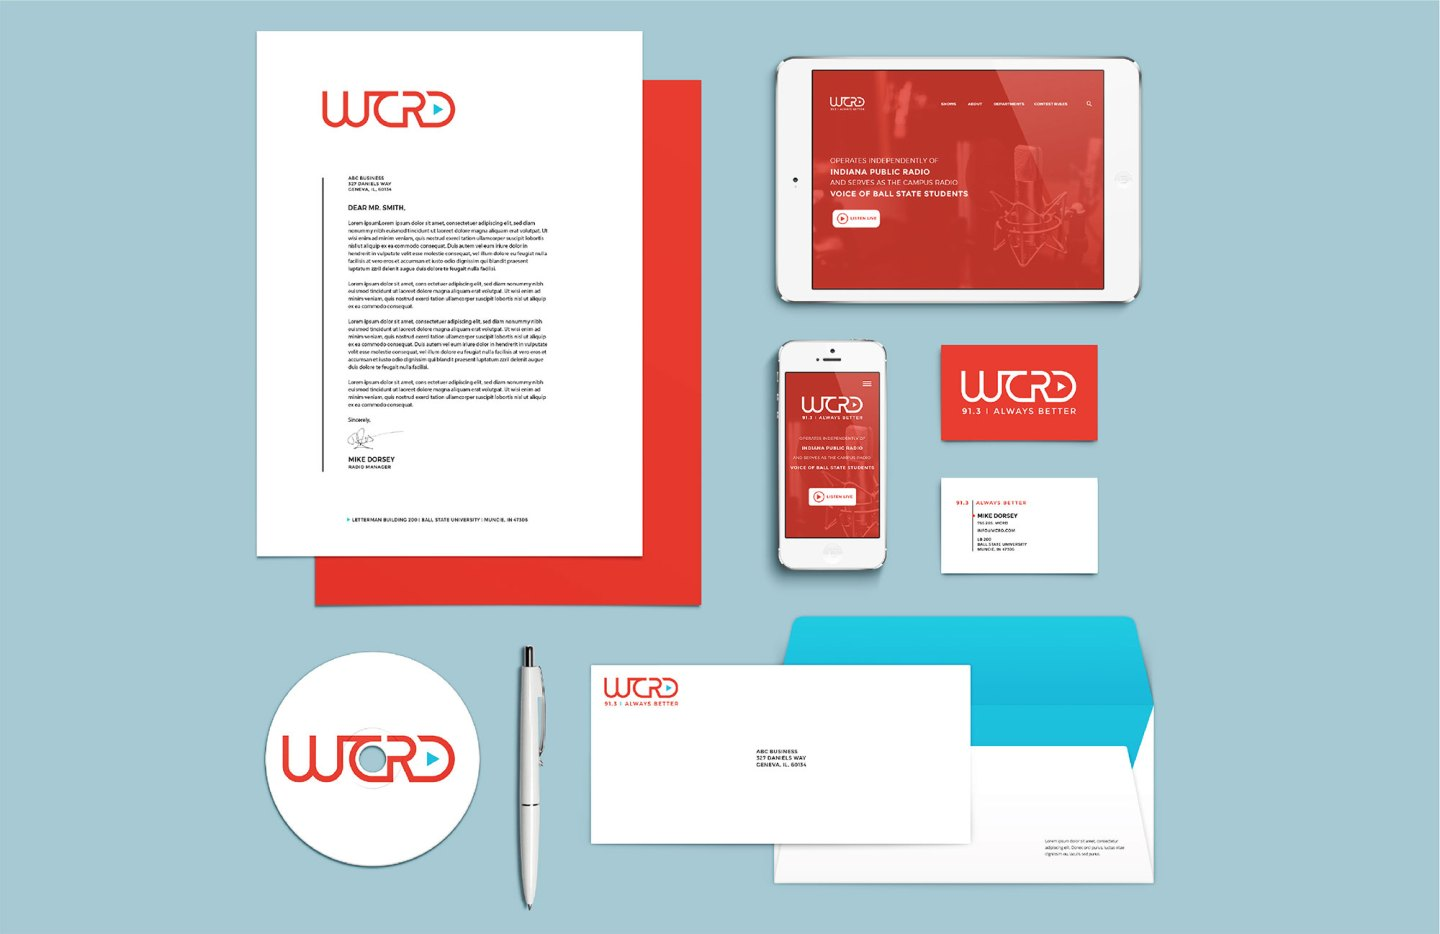 The WCRD identity system stationery collateral